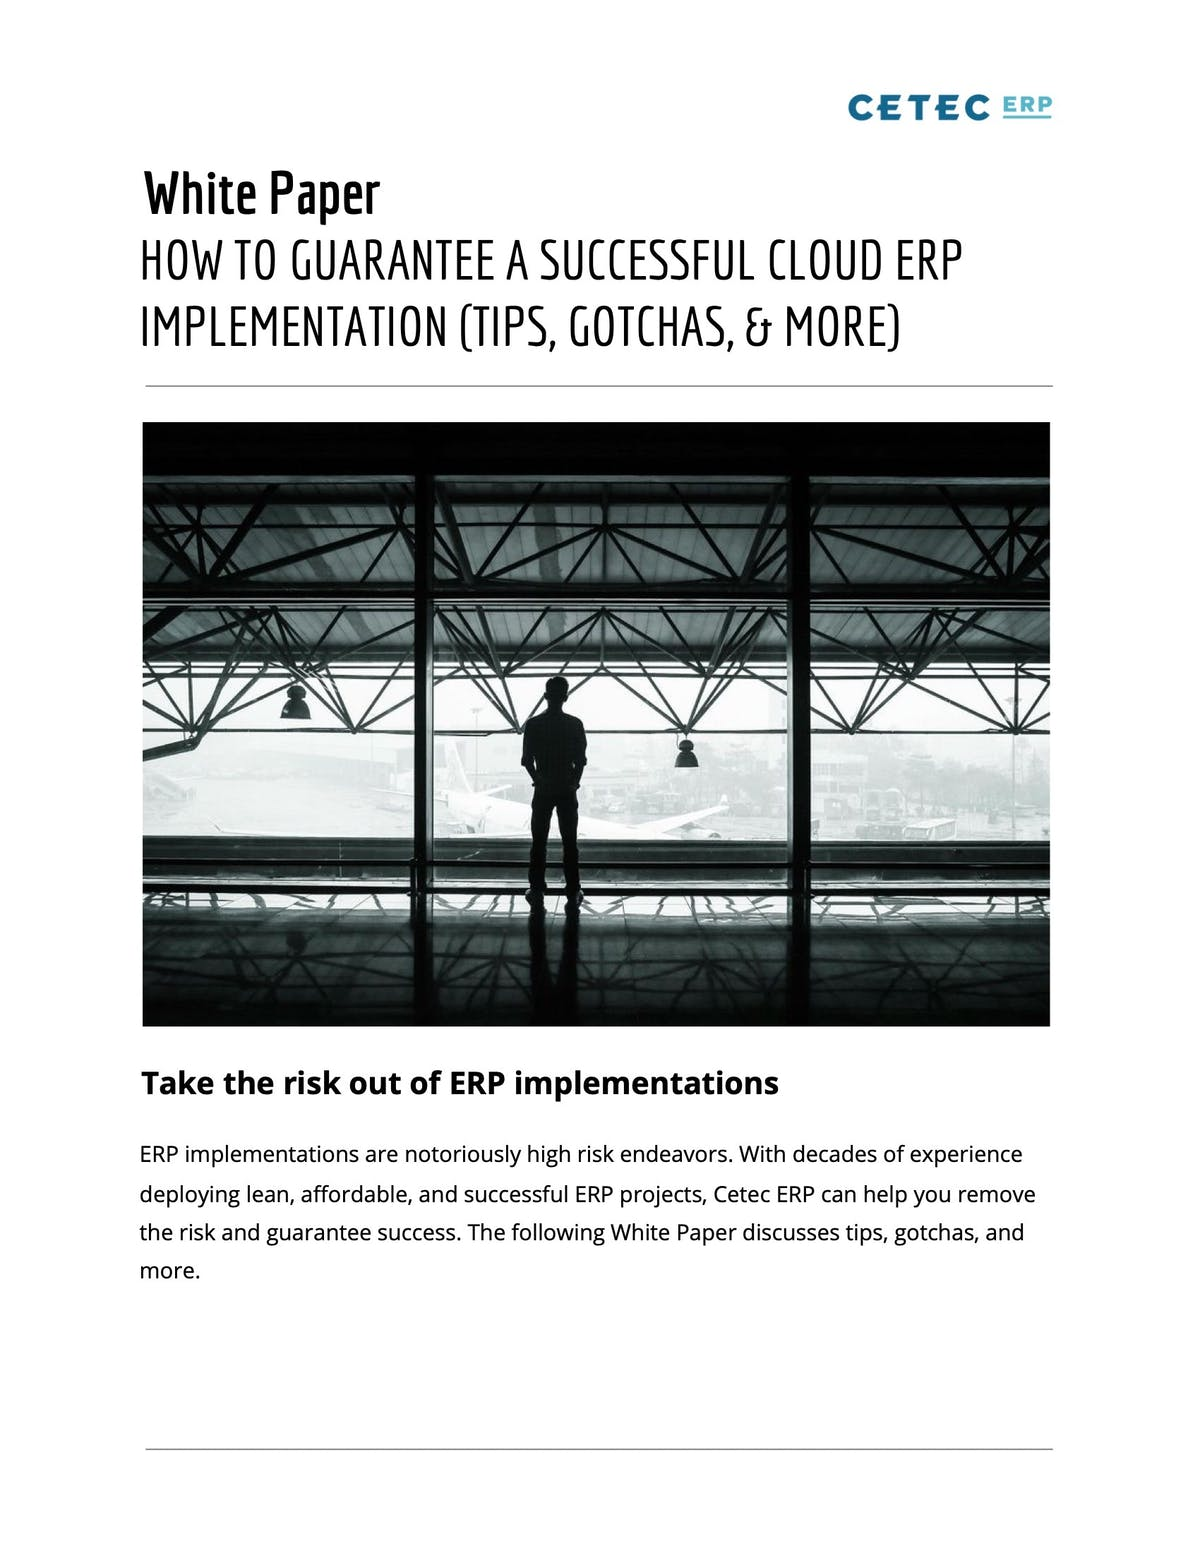 Cetec ERP White Paper - How to Guarantee a Successful Cloud ERP Implementation